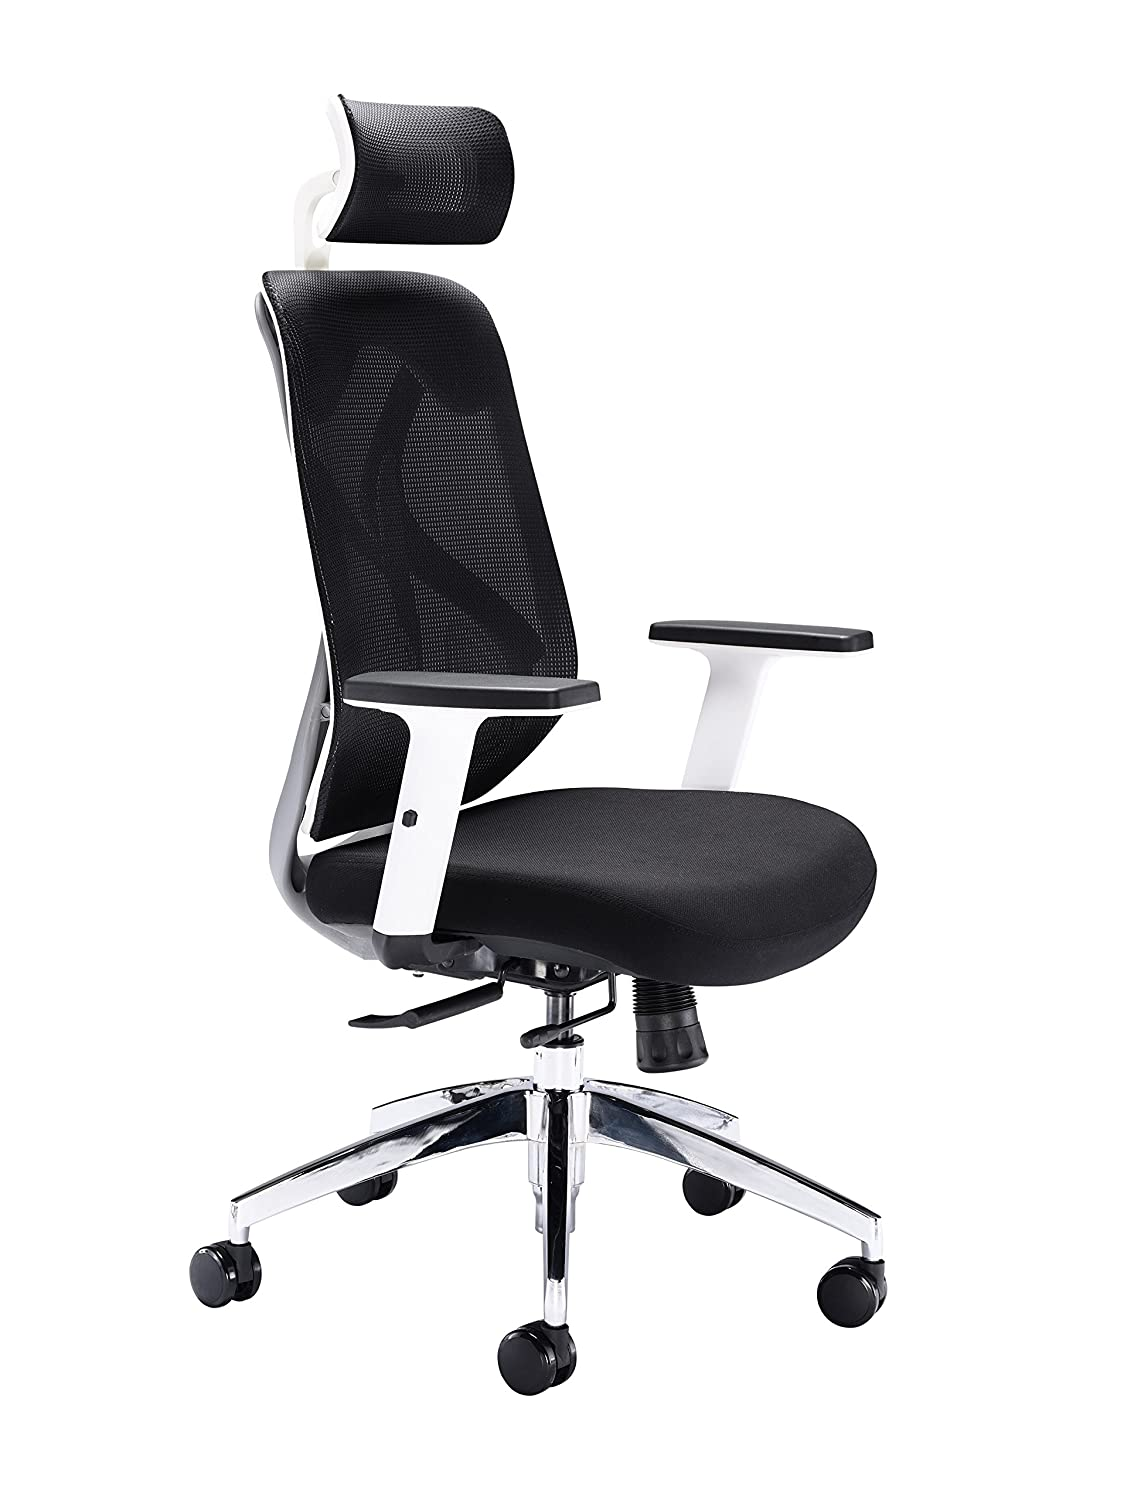 Lumbar Support Office Hippo 2020 High Back Executive Chair with Headrest Seat Slide Height Adjustable Arms Black Mesh 70 x 70 x 98.5 cm Fabric